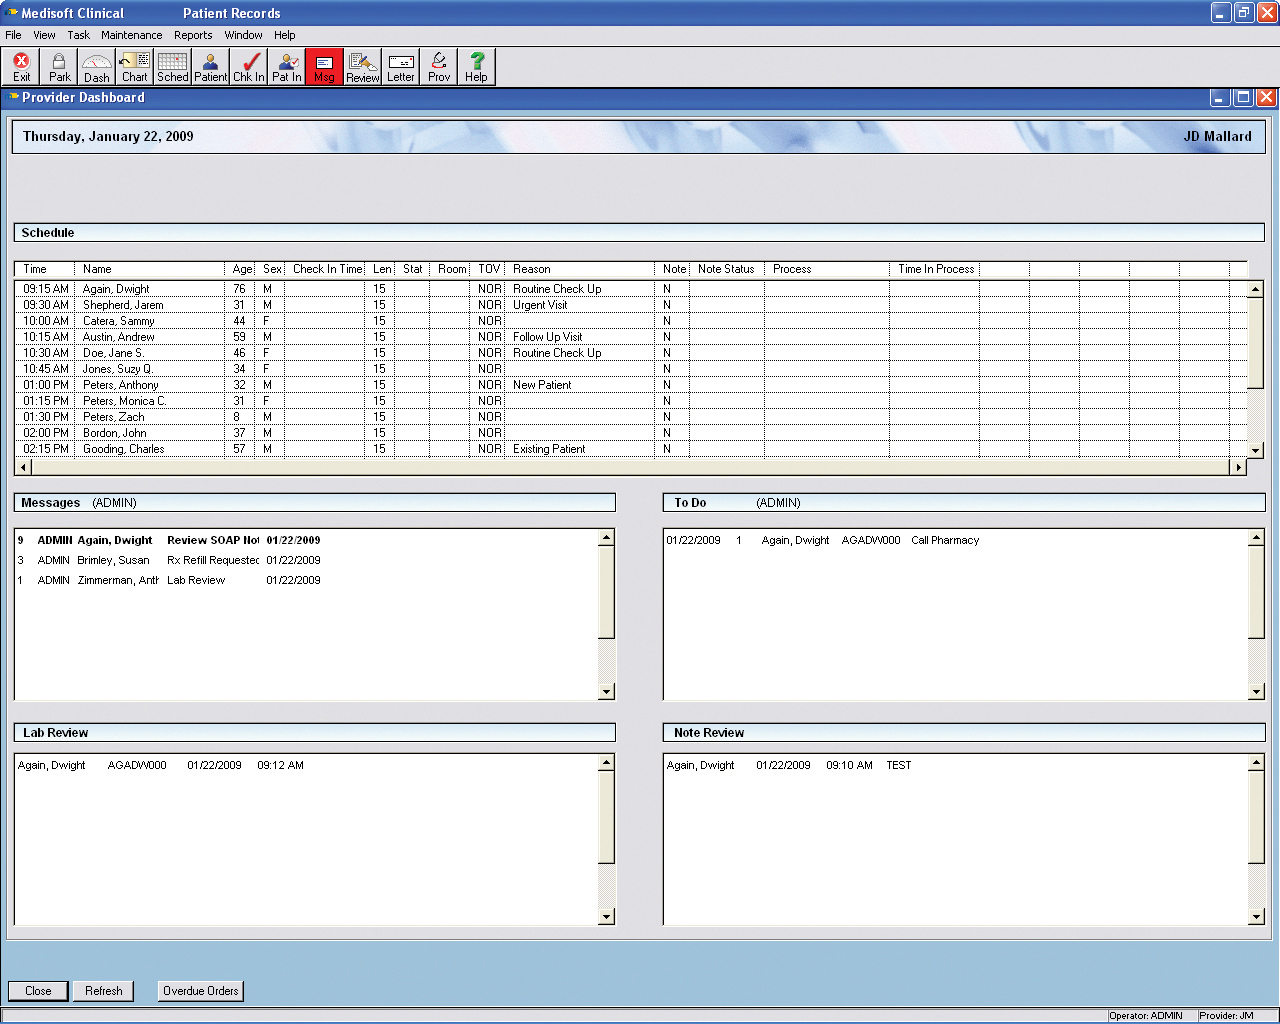 Medisoft Clinical - Provider dashboard